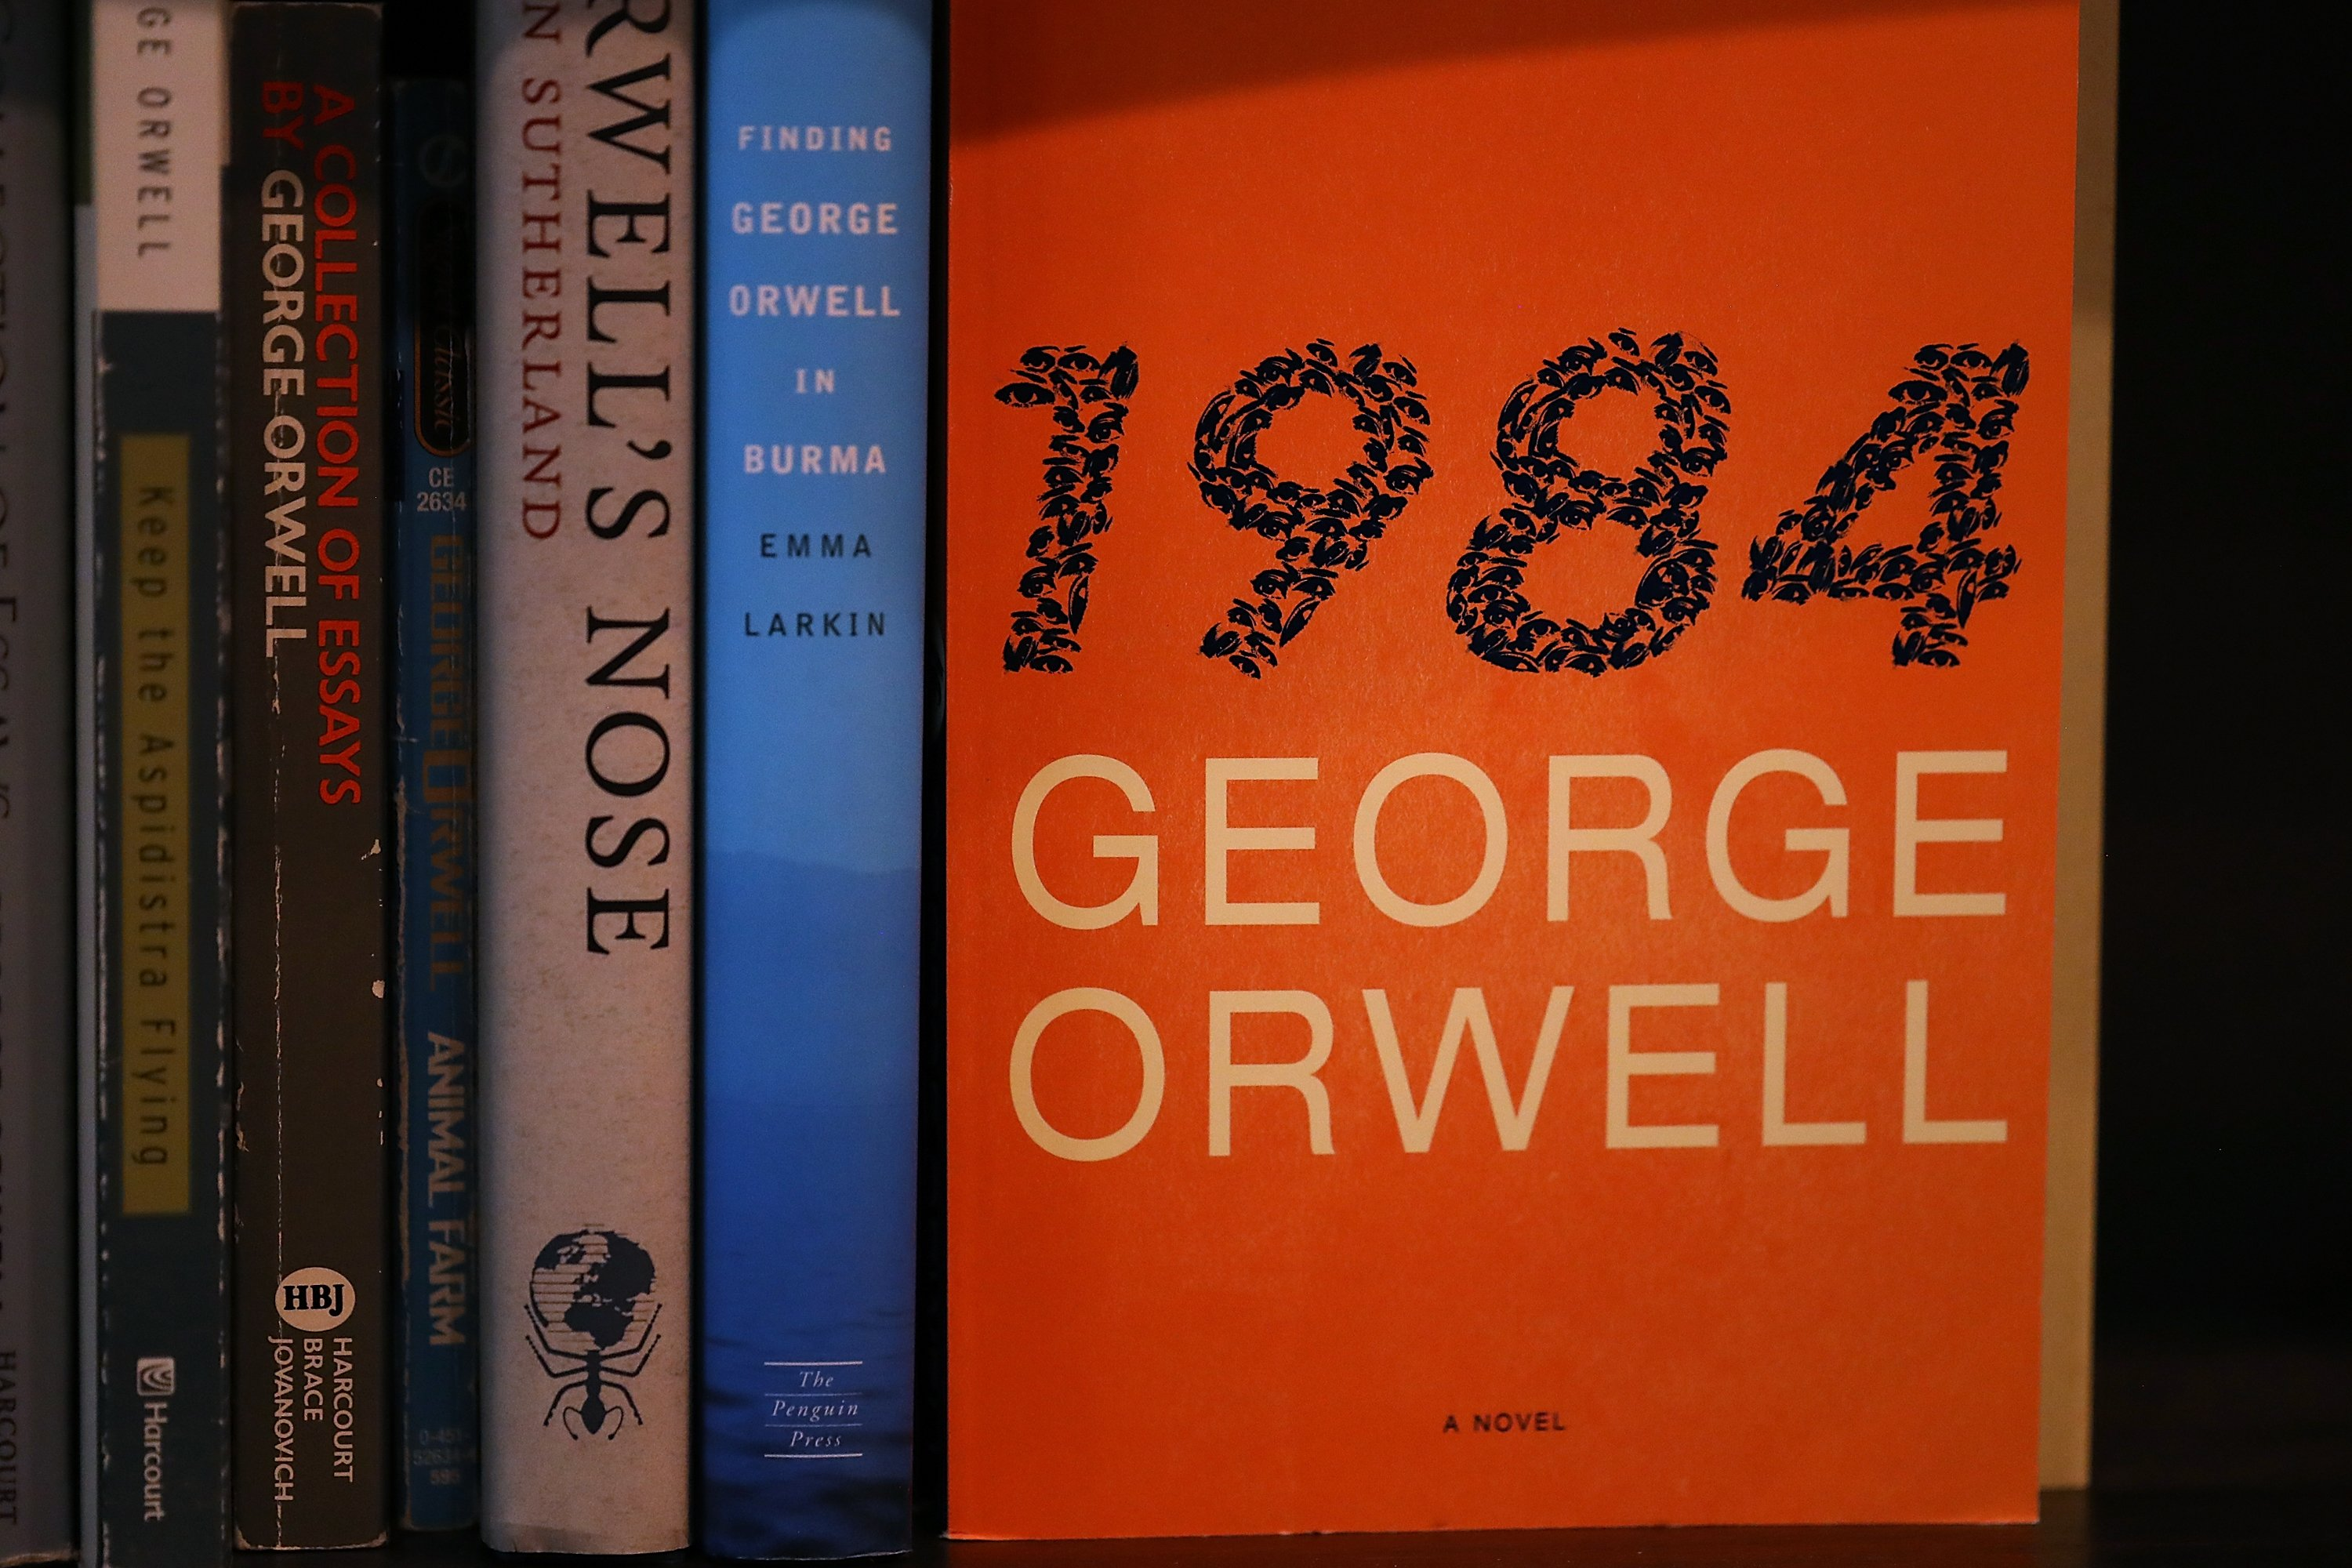 an analysis of the politics of airstrip one in orwells novel 1984